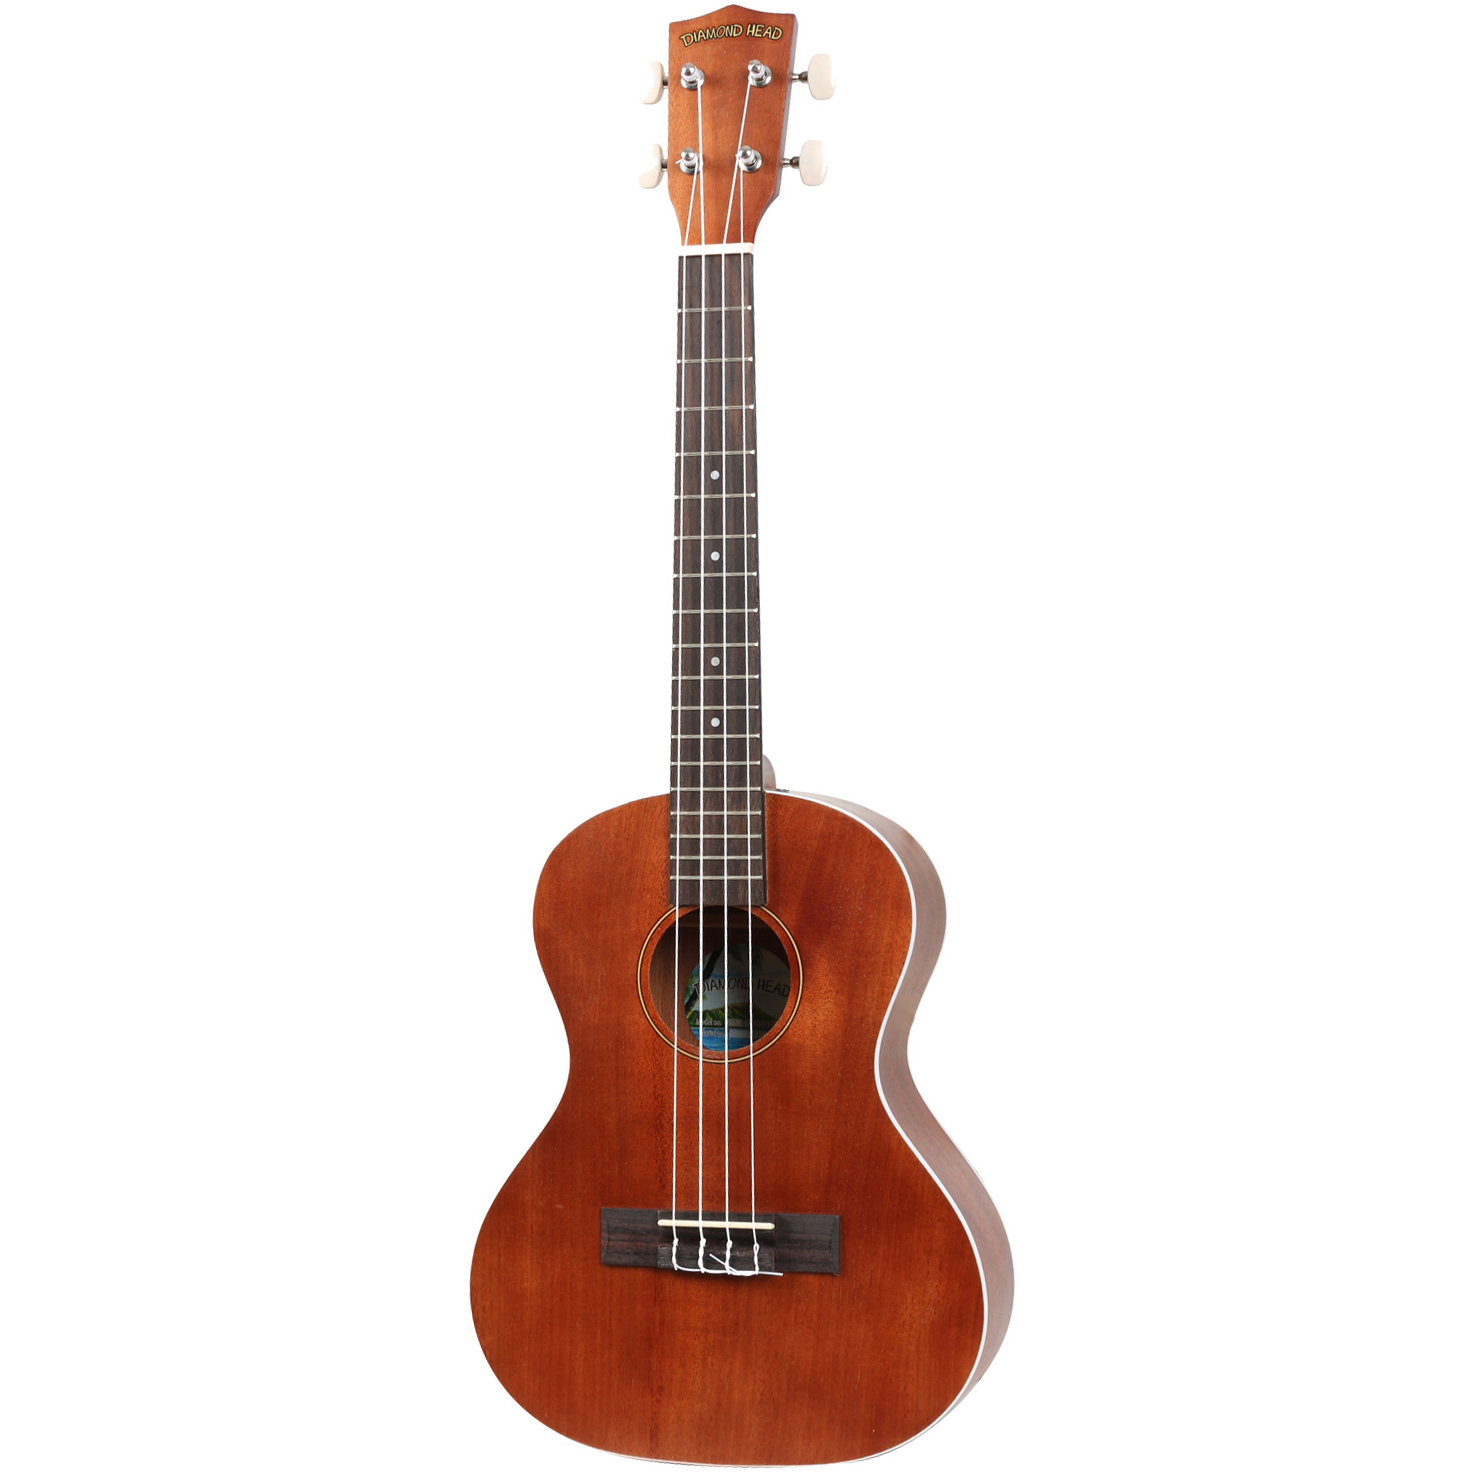 Diamond Head DU 250T Satin Mahogany Tenor Ukulele